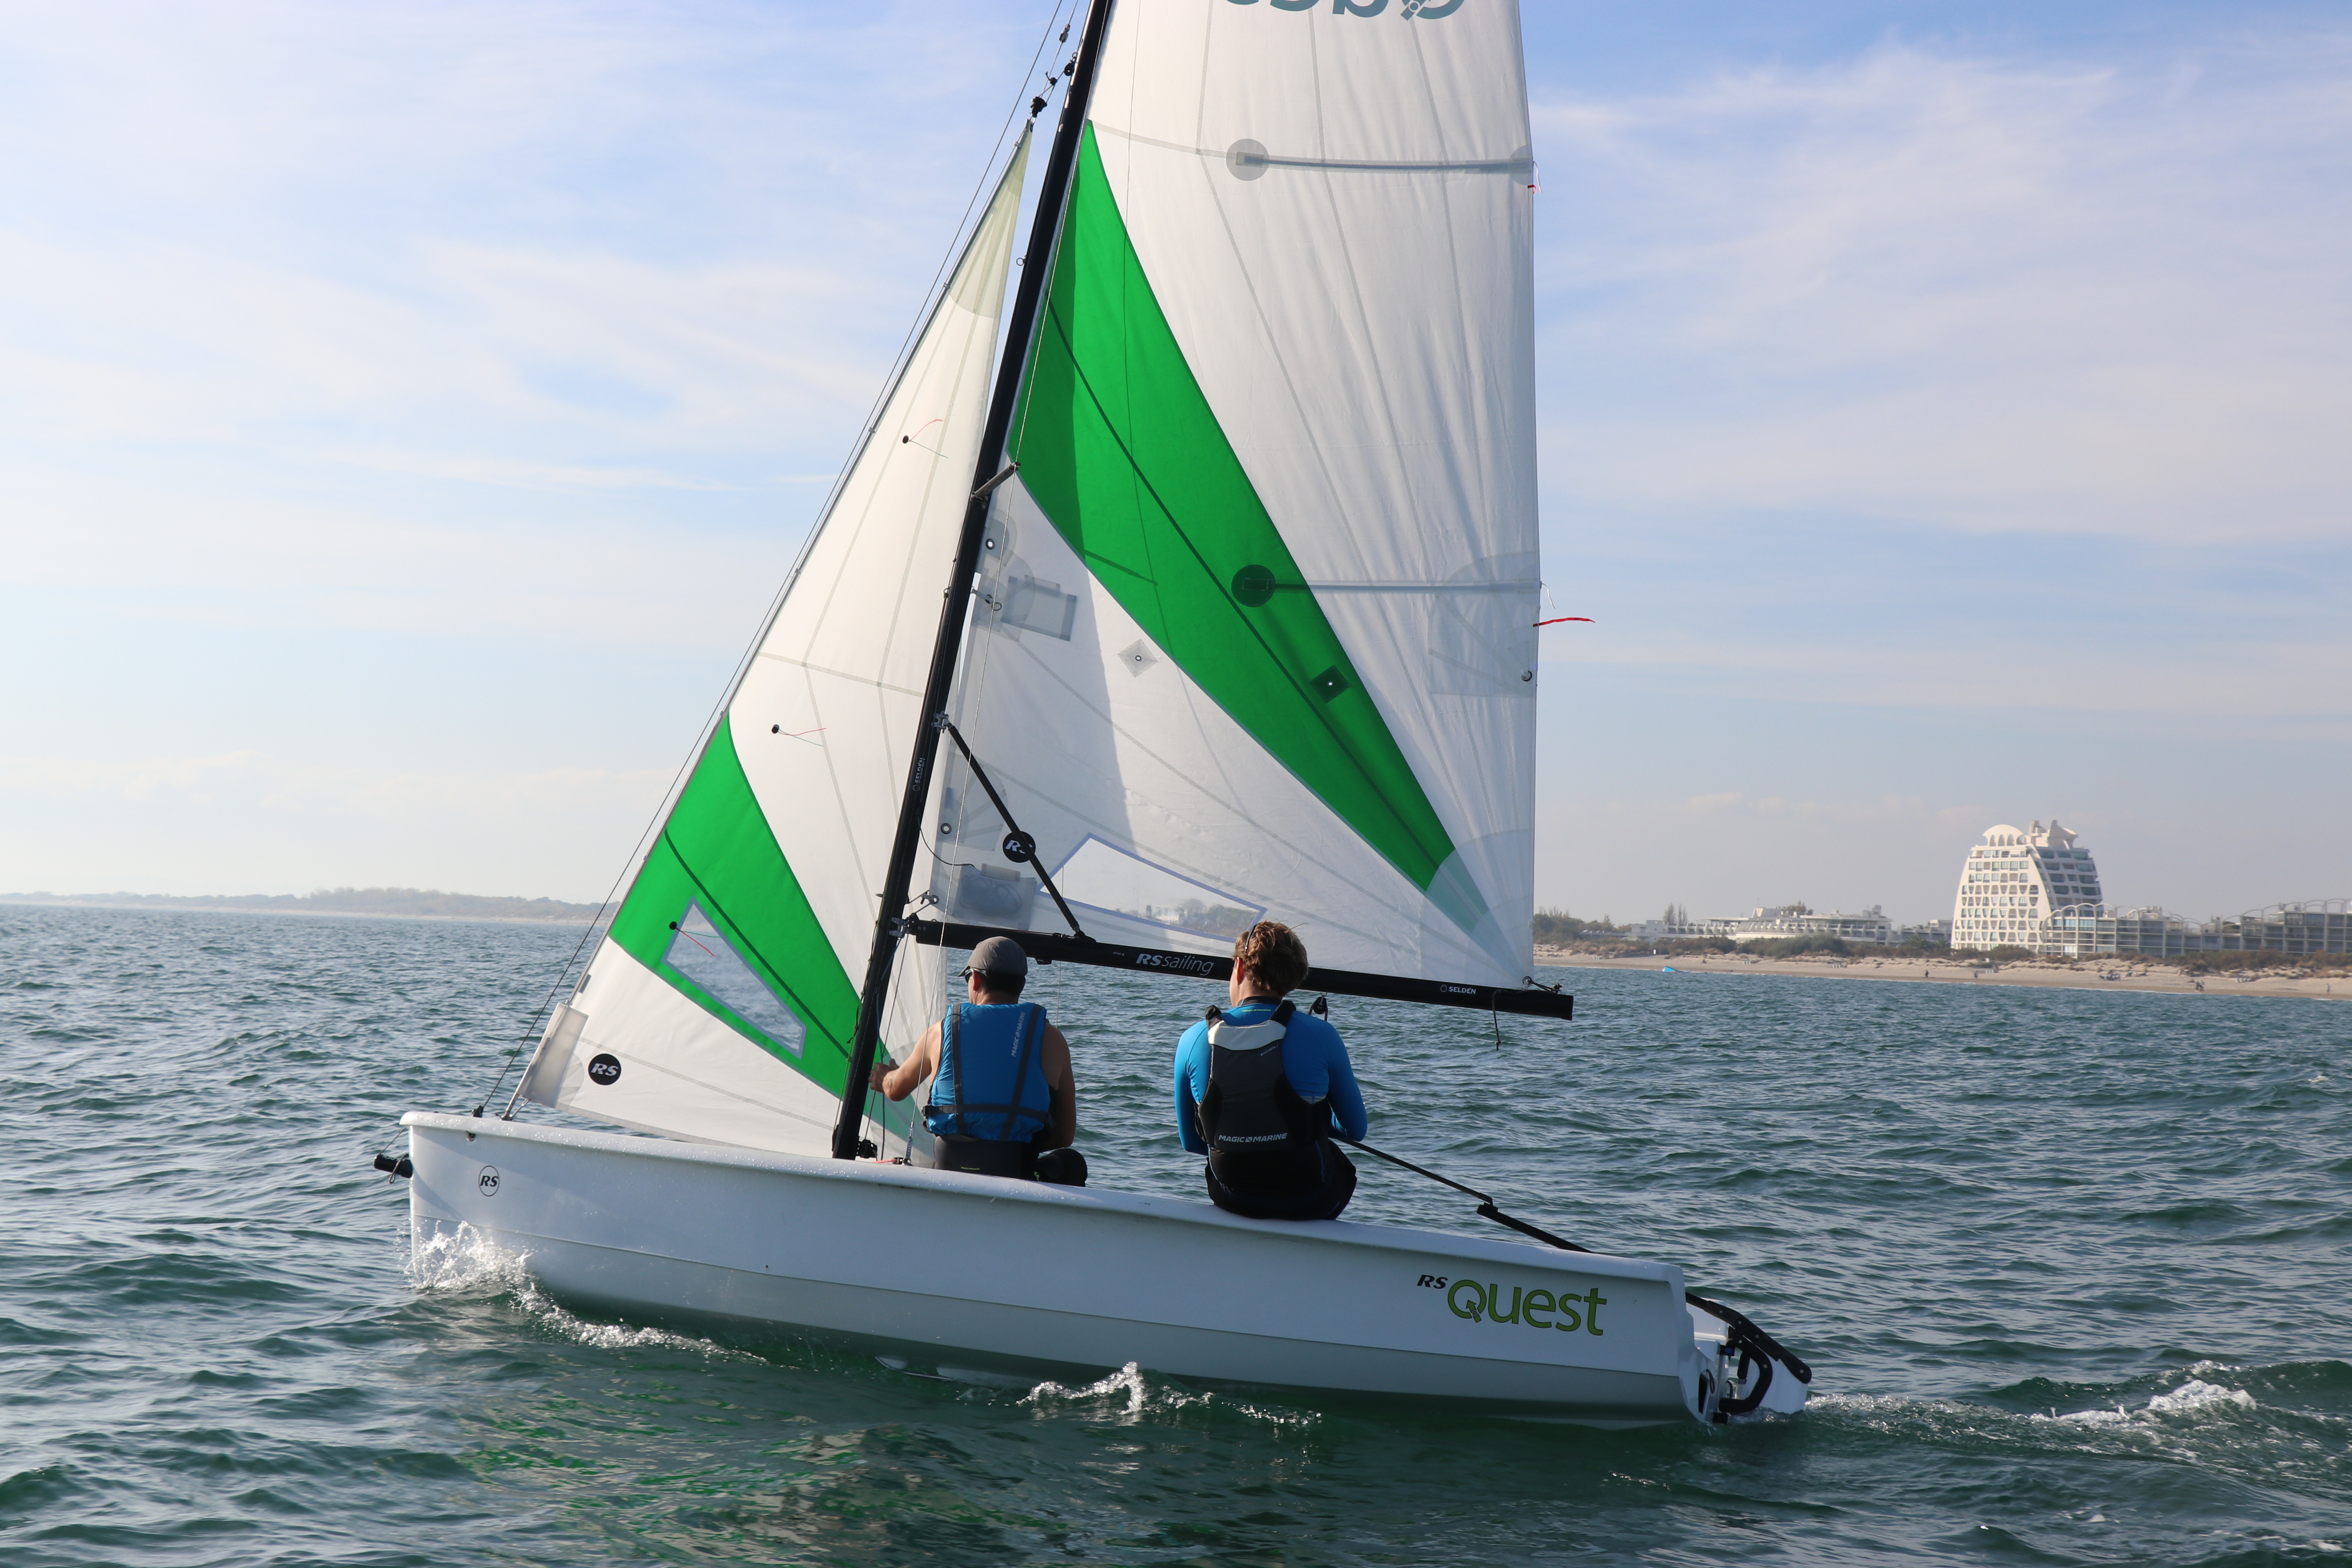 RS Quest has found international appeal among sailing clubs and programmes, with its simplicity, stability and durability.